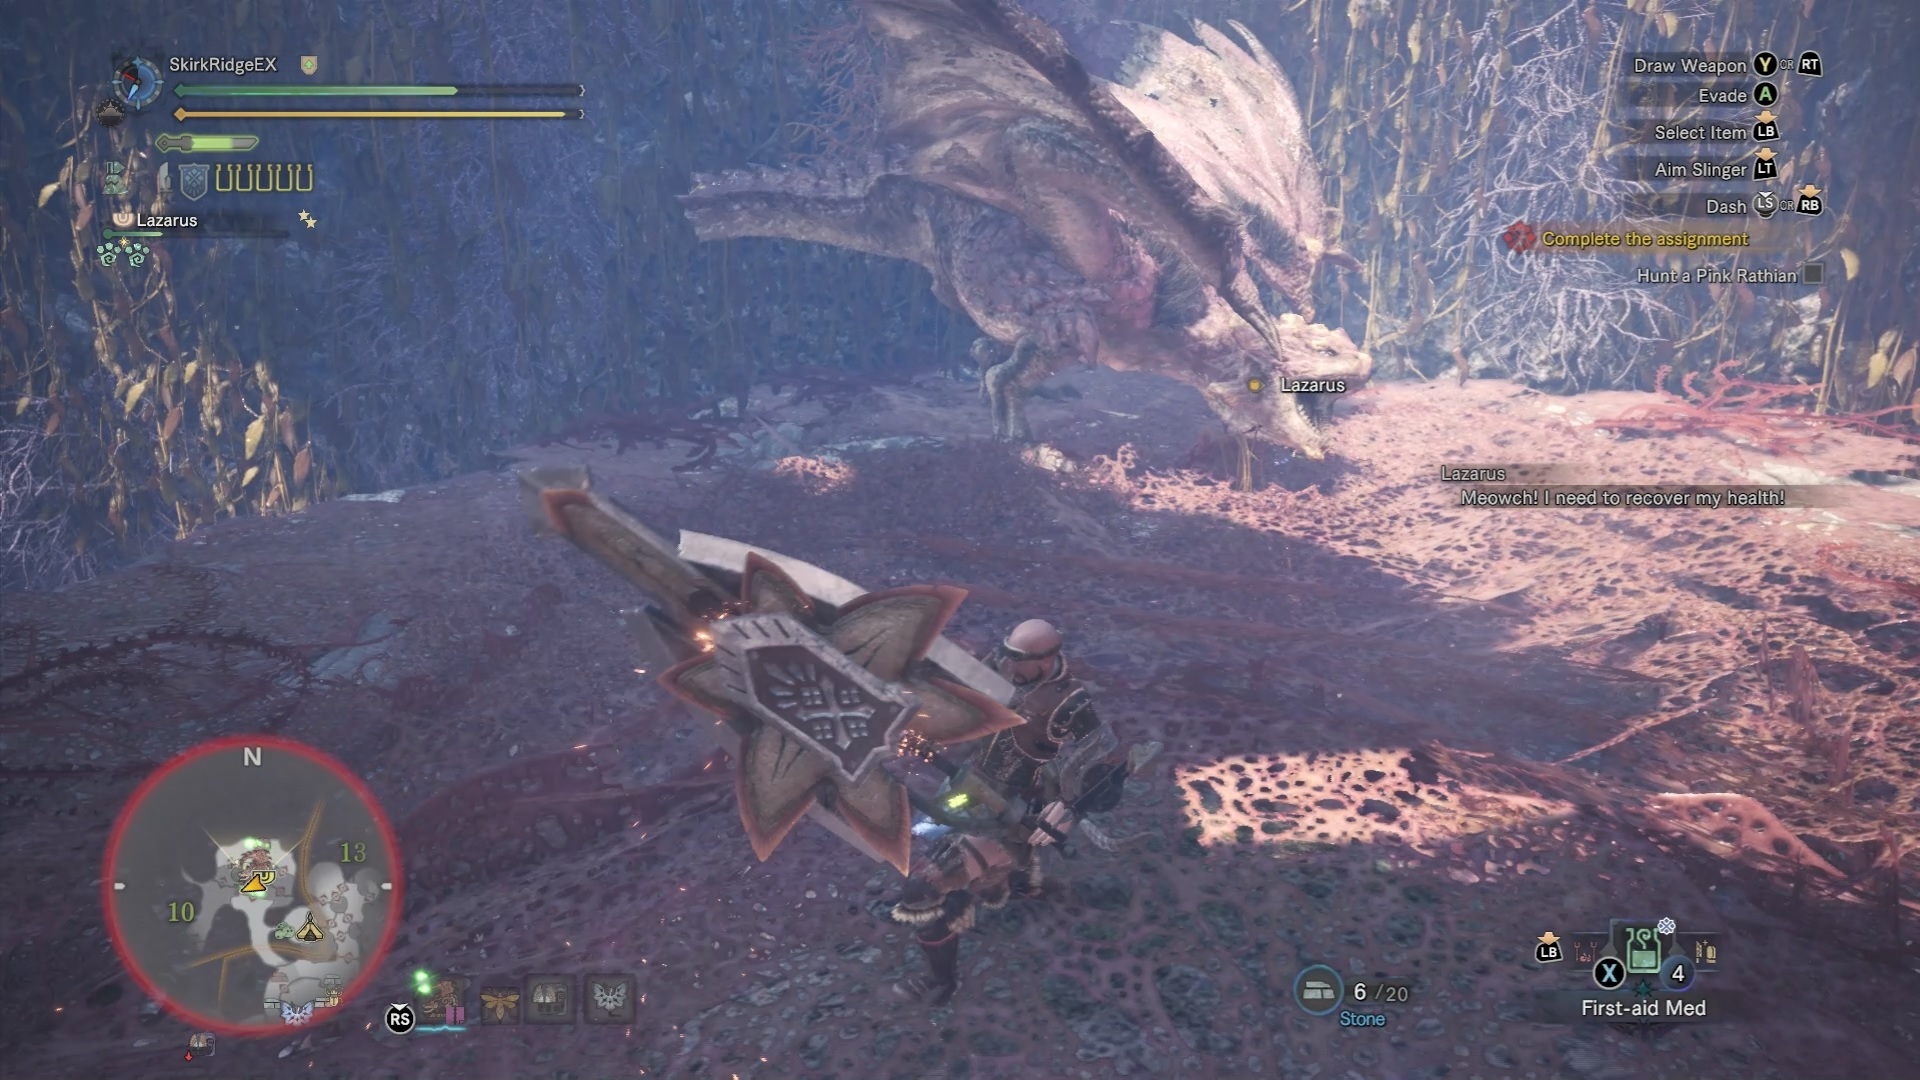 Pink Rathian near its nest with its tail chopped off and scales semi-removed.